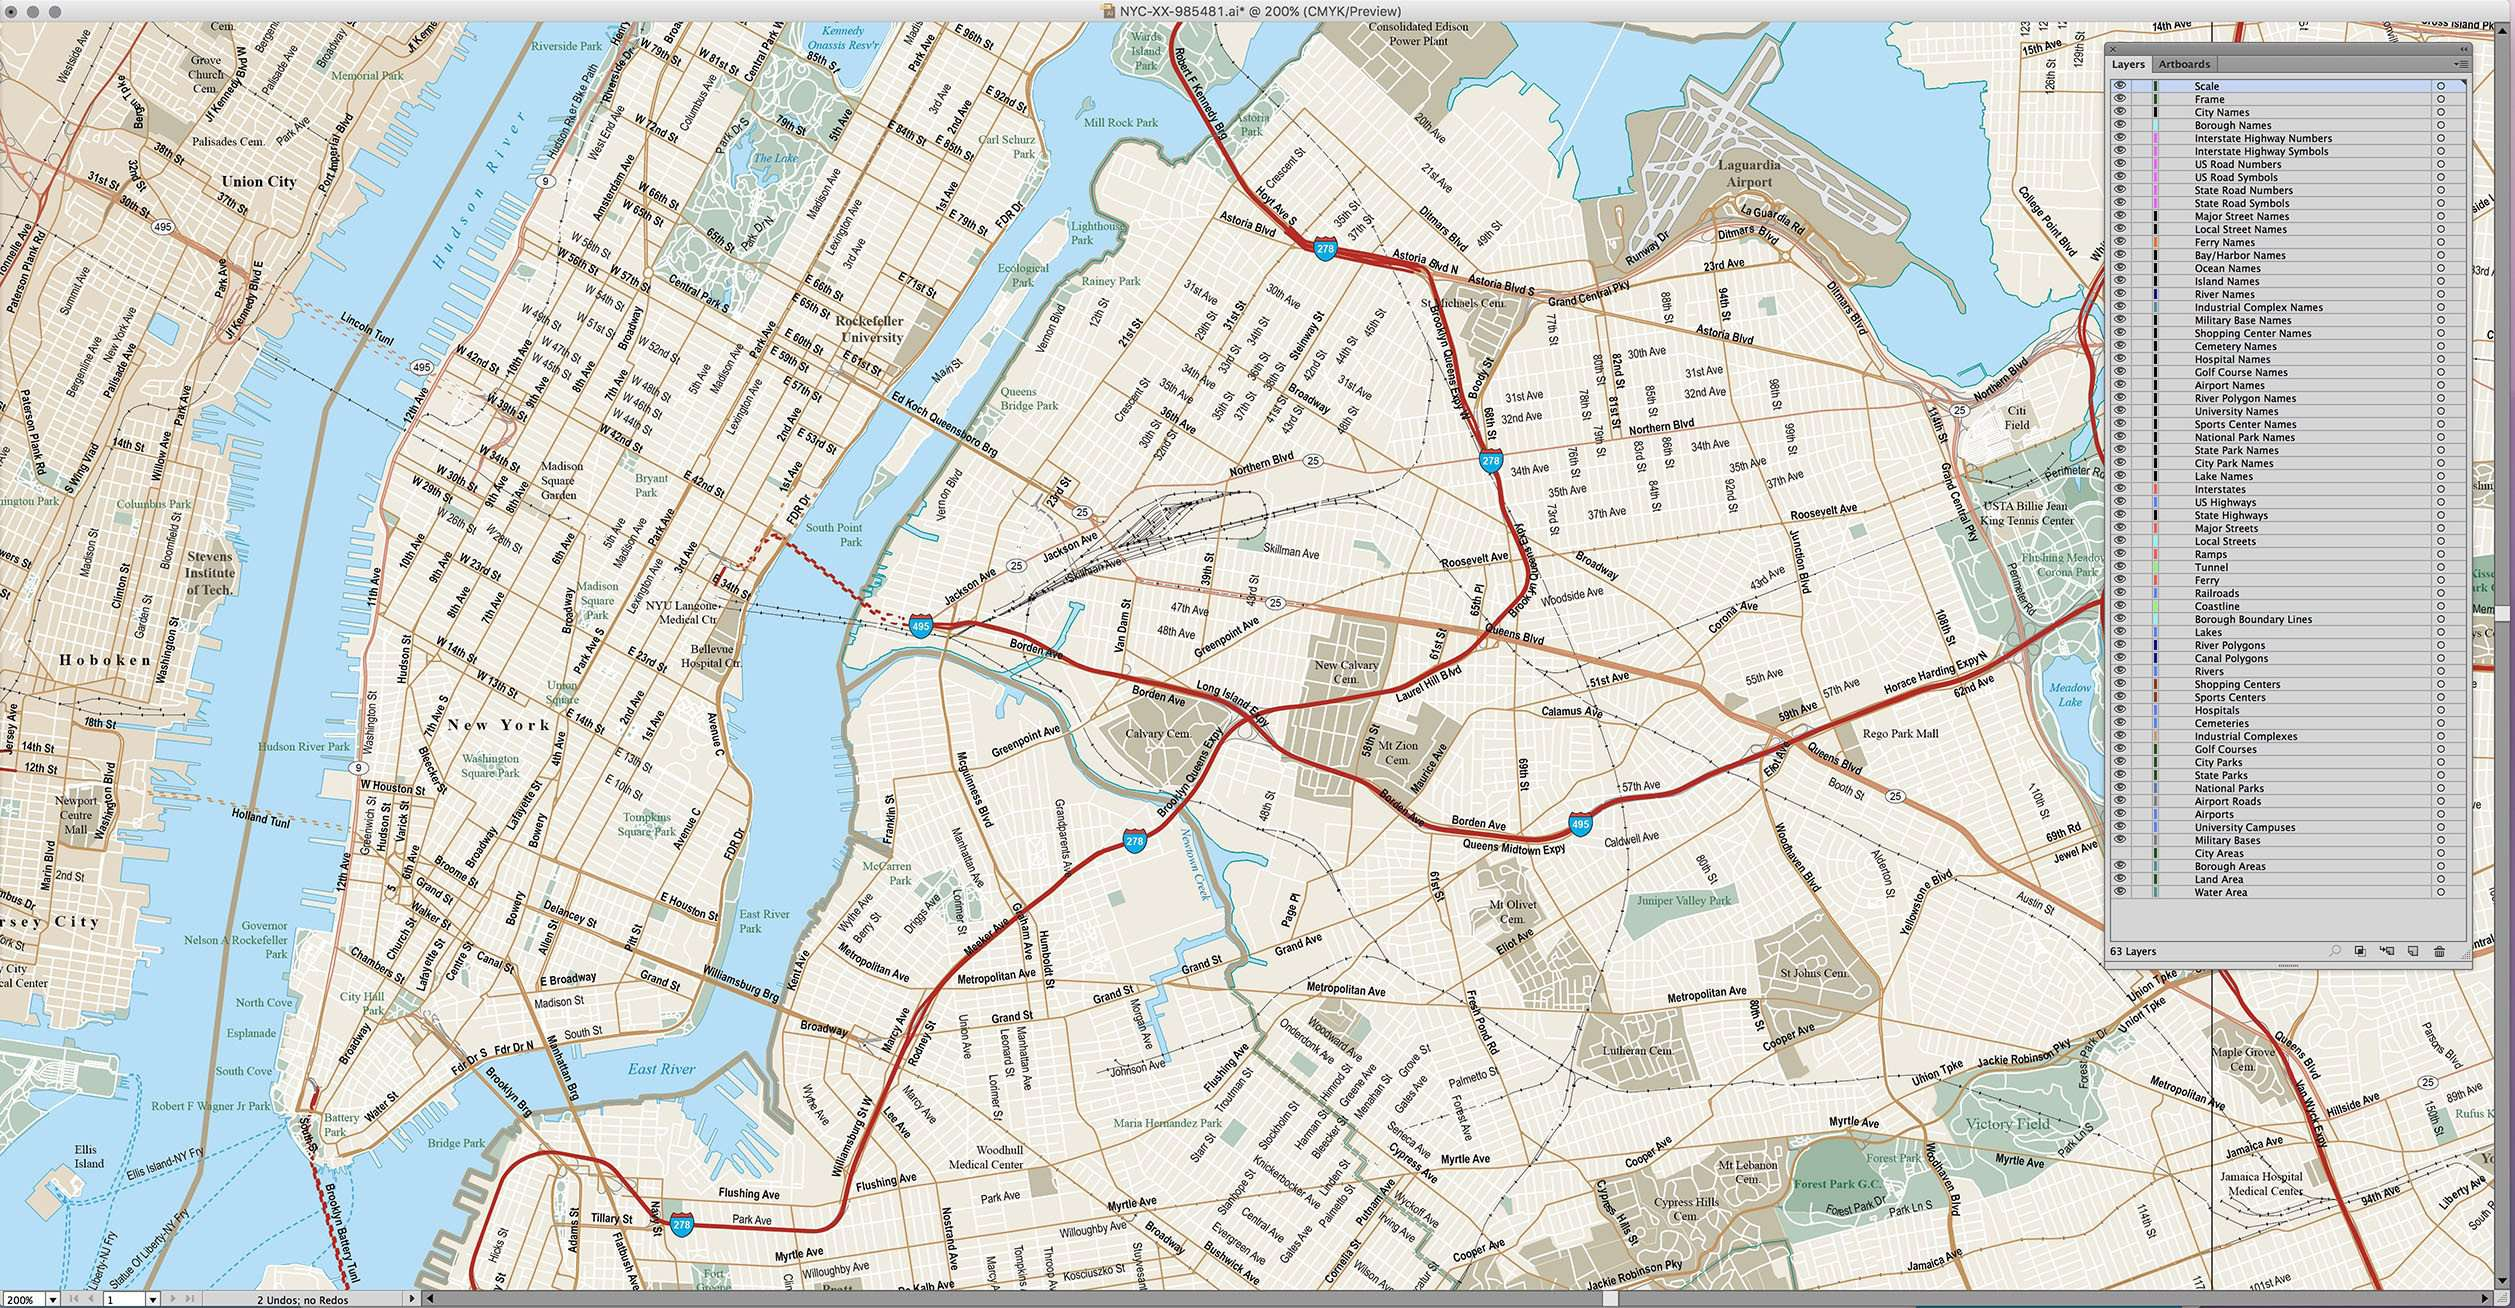 New York City Subway Map With Street Names.New York City Ny Metro Area With All Local Streets